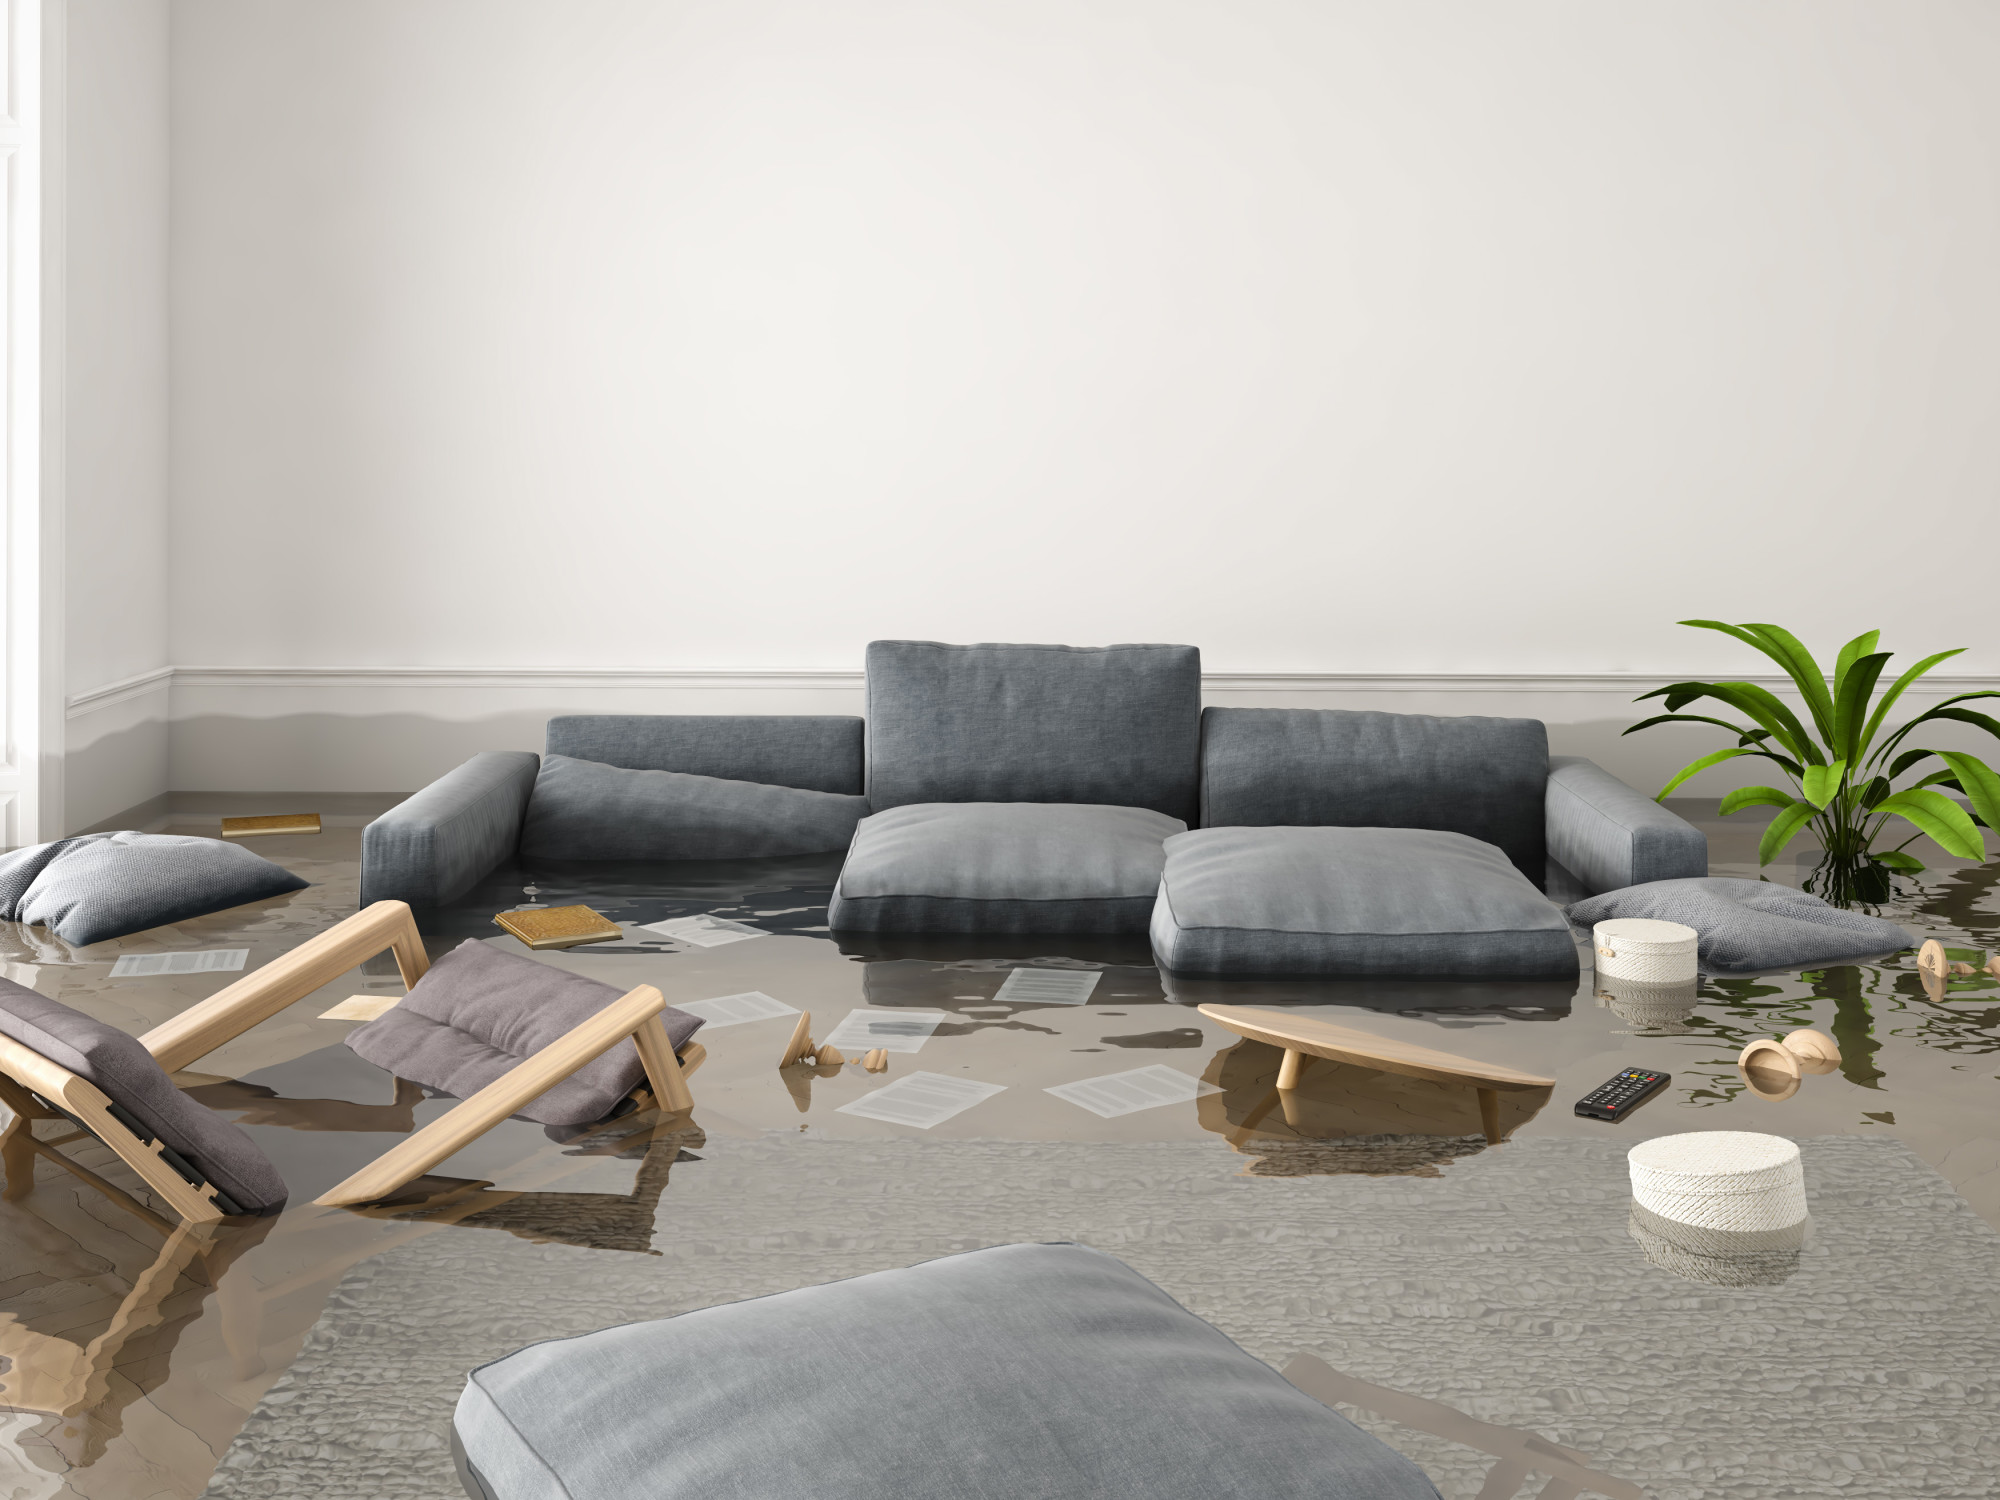 5 Water Damage Restoration Tips to Get Your Home Back in Order